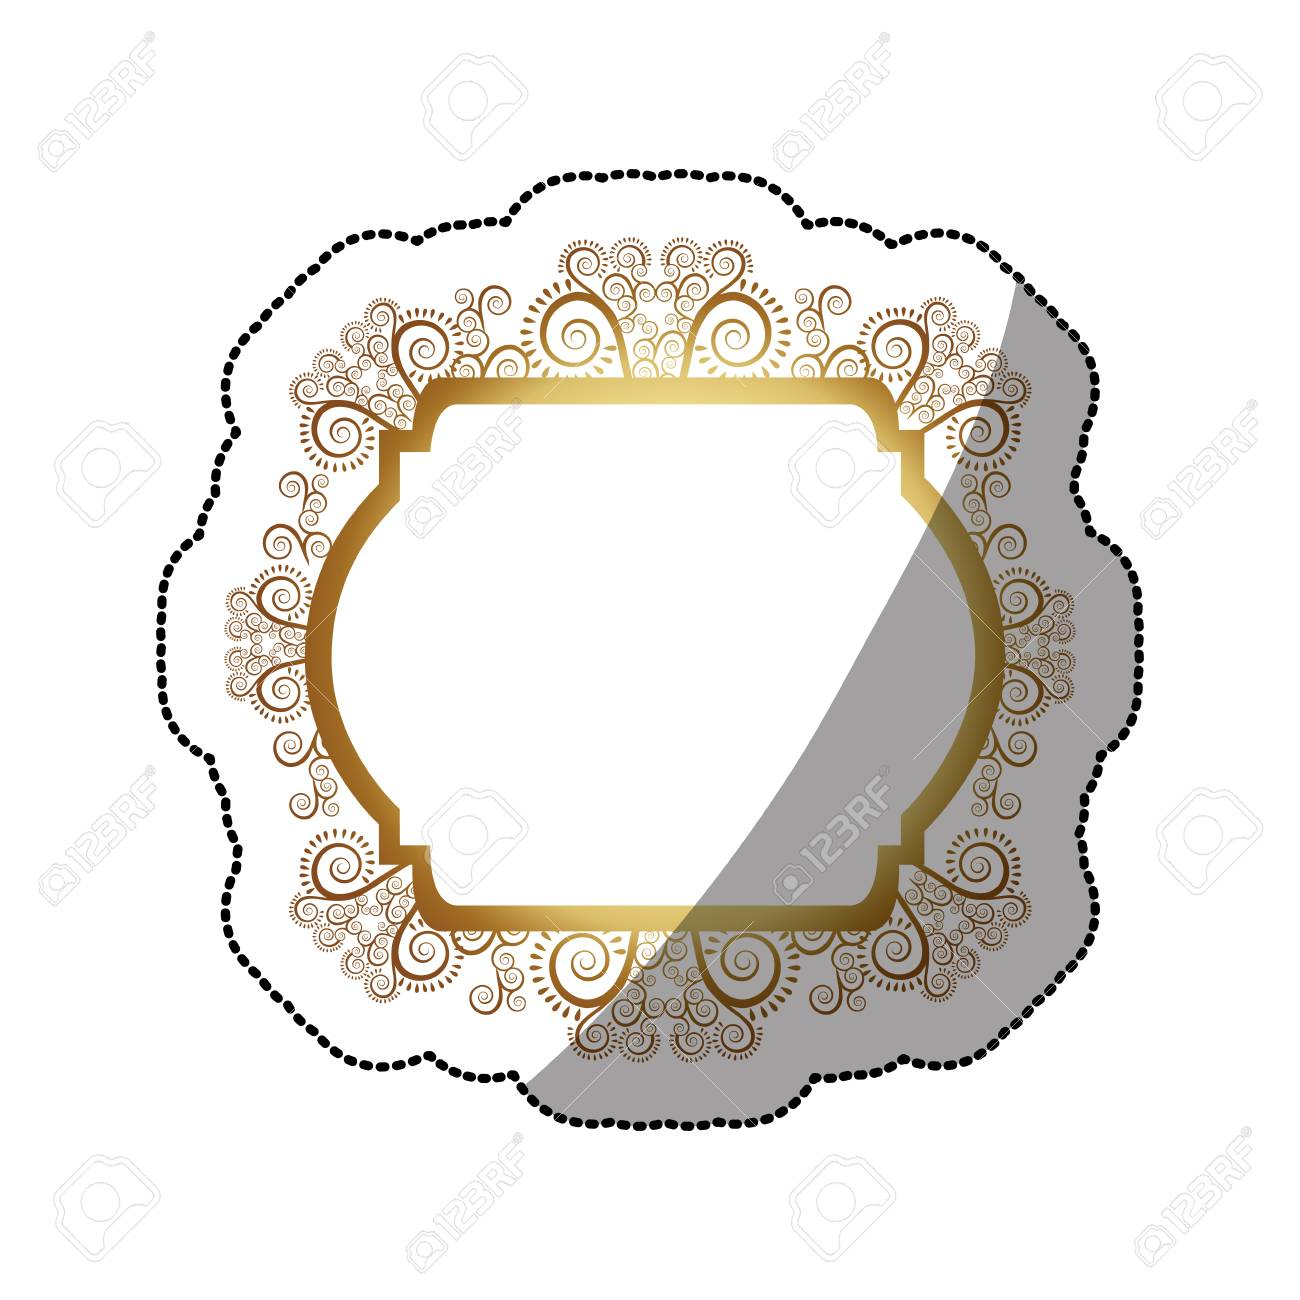 Sticker Golden Curved Rectangle Heraldic Baroque Frame Vector